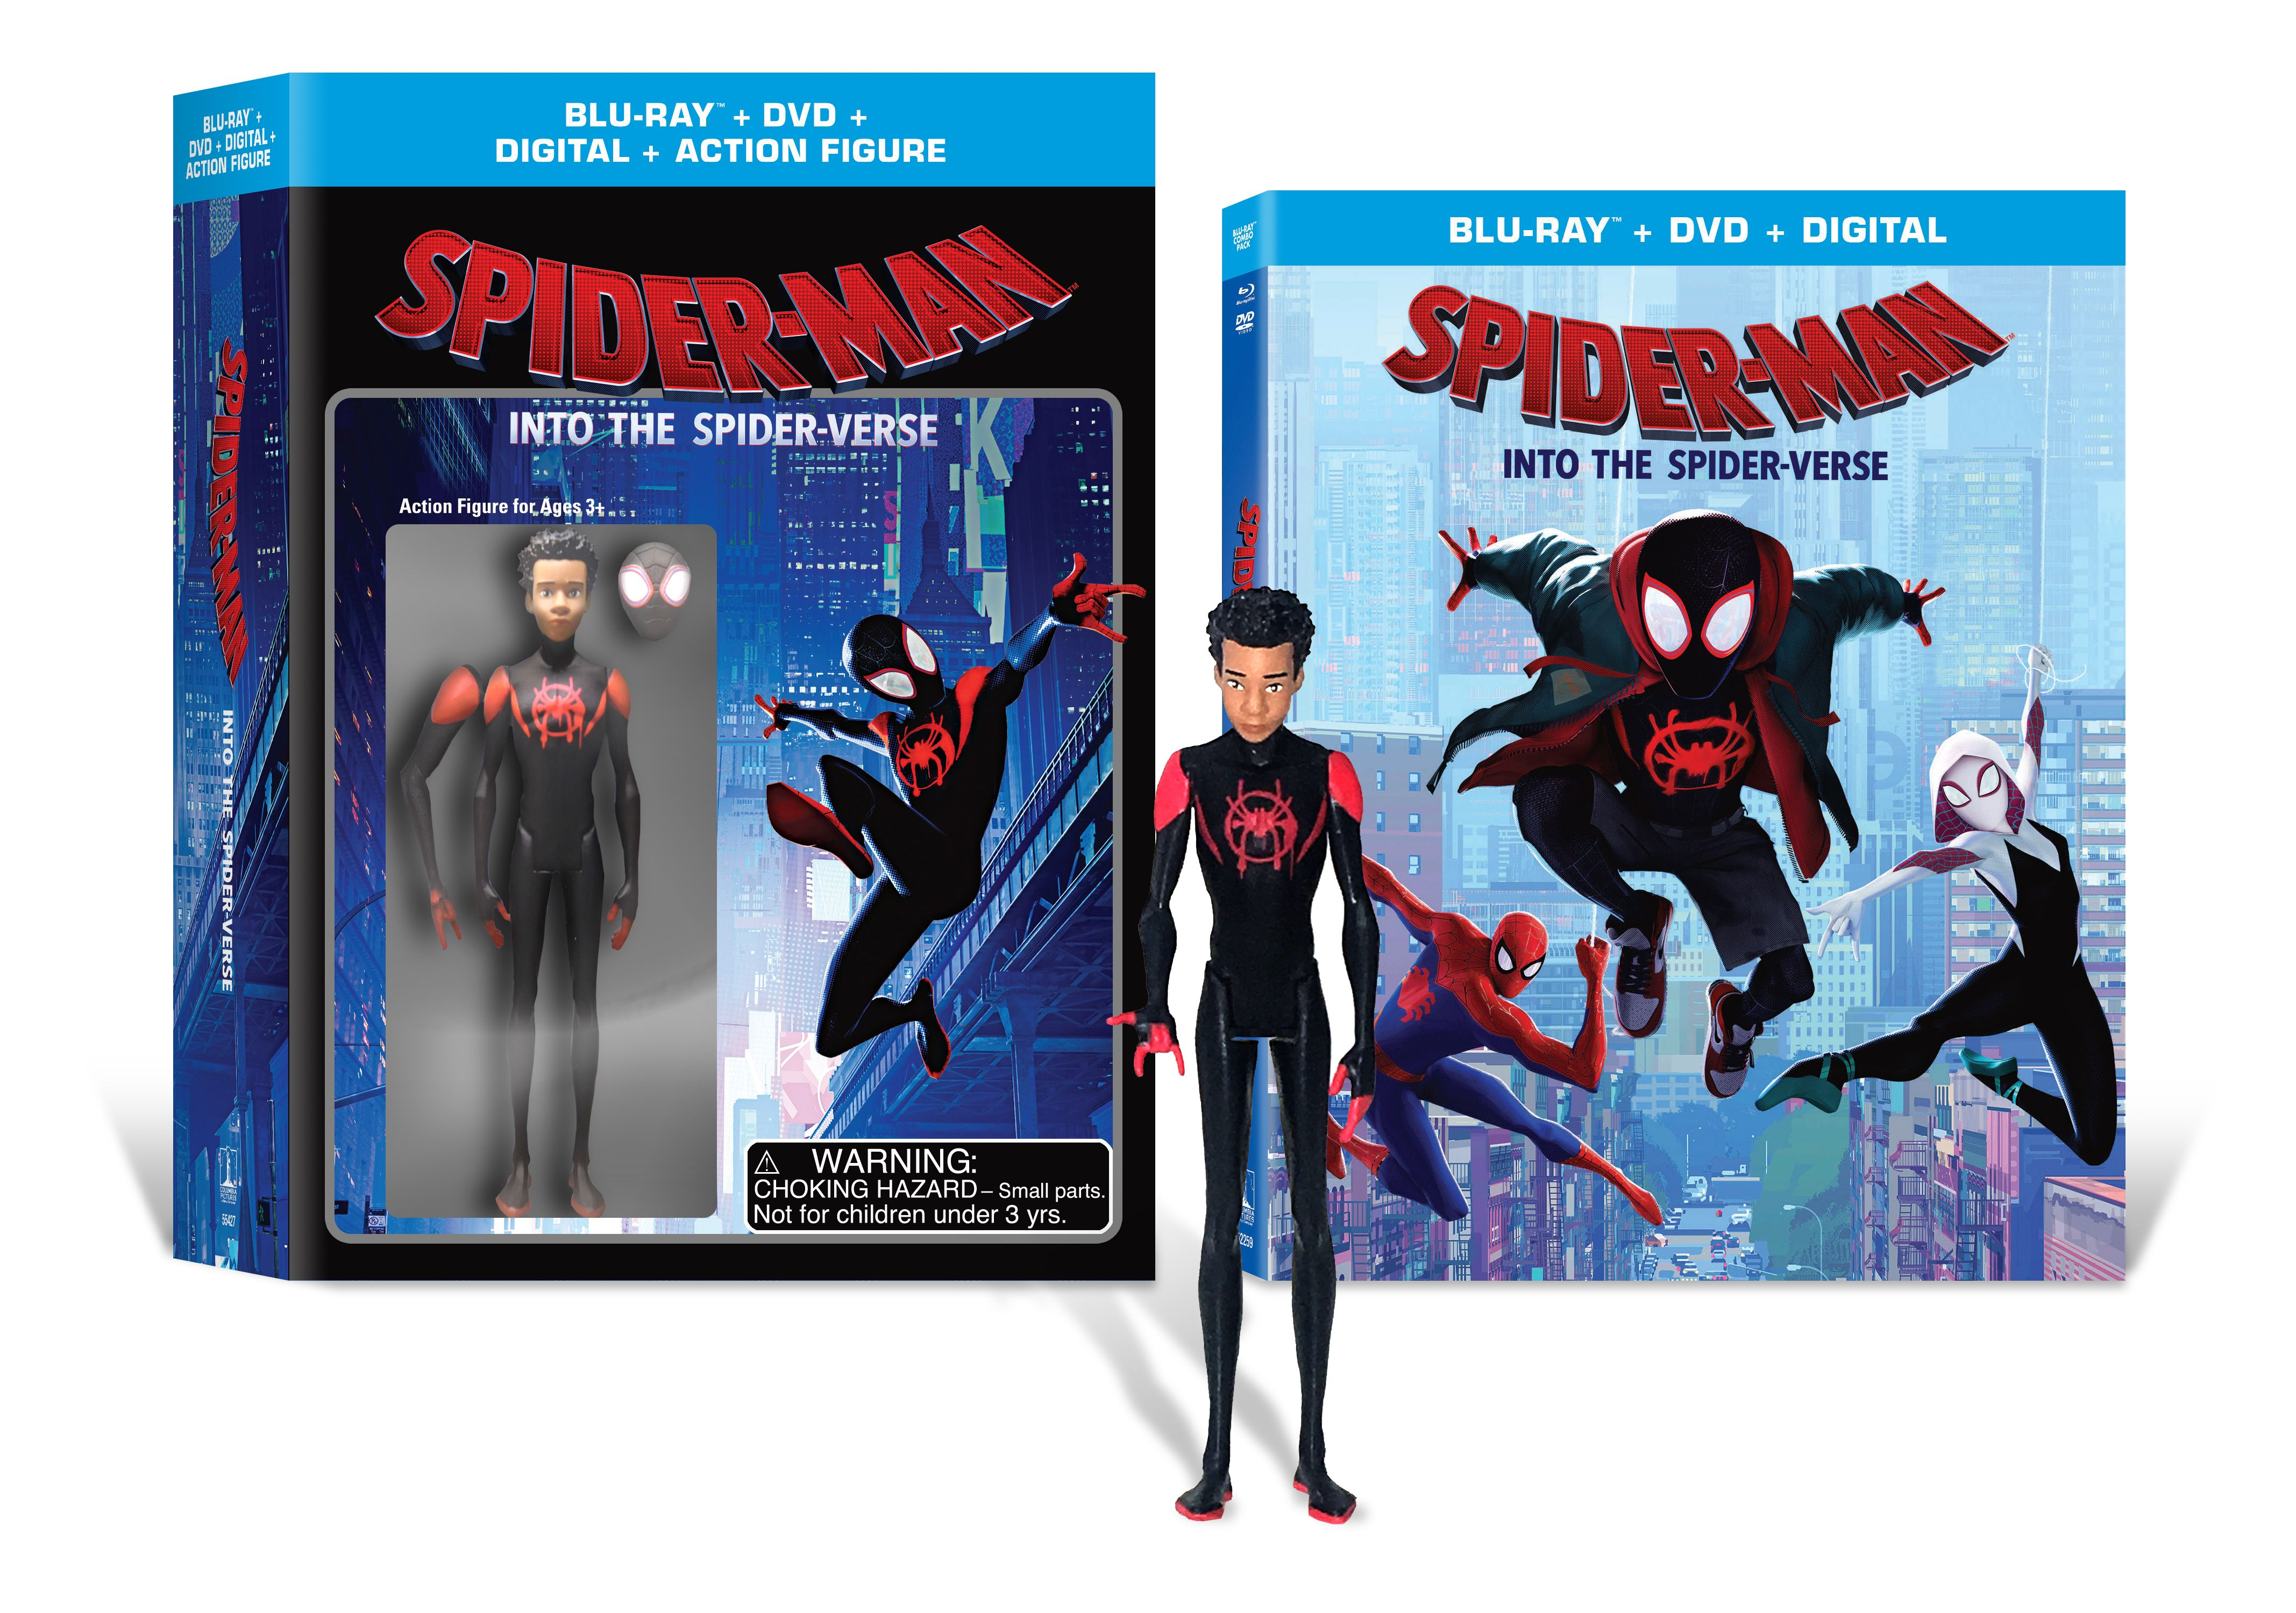 d52a3657 Spider-Man: Into the Spider-Verse (Walmart Exclusive) (Blu-Ray + DVD +  Digital Copy + Action Figurine) - Walmart.com